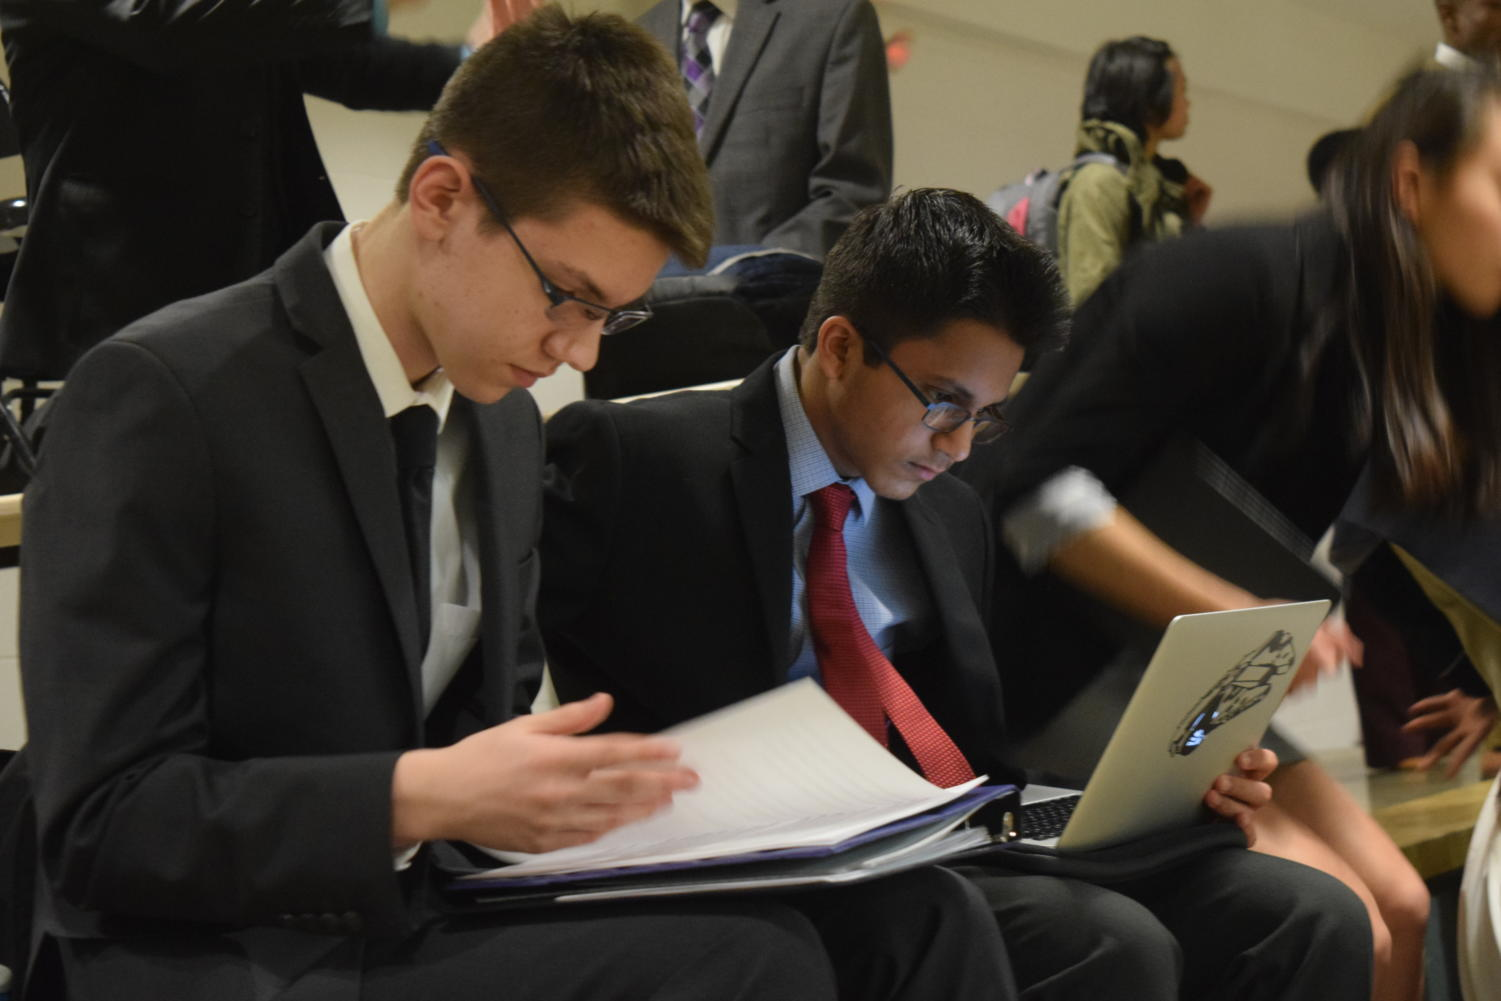 """Freshmen Tyler Kinzy and Praveen Dharmavarapu work on their cases during free time in between rounds. Jefferson City High School hosted one of the last tournaments for debate teams around the state before districts. """"I've done two tournaments so far and I've won first place at both of them, so it's definitely been something surprising, especially to join this late in the season when everyone else has been [competing] for a while,"""" Kinzy said."""